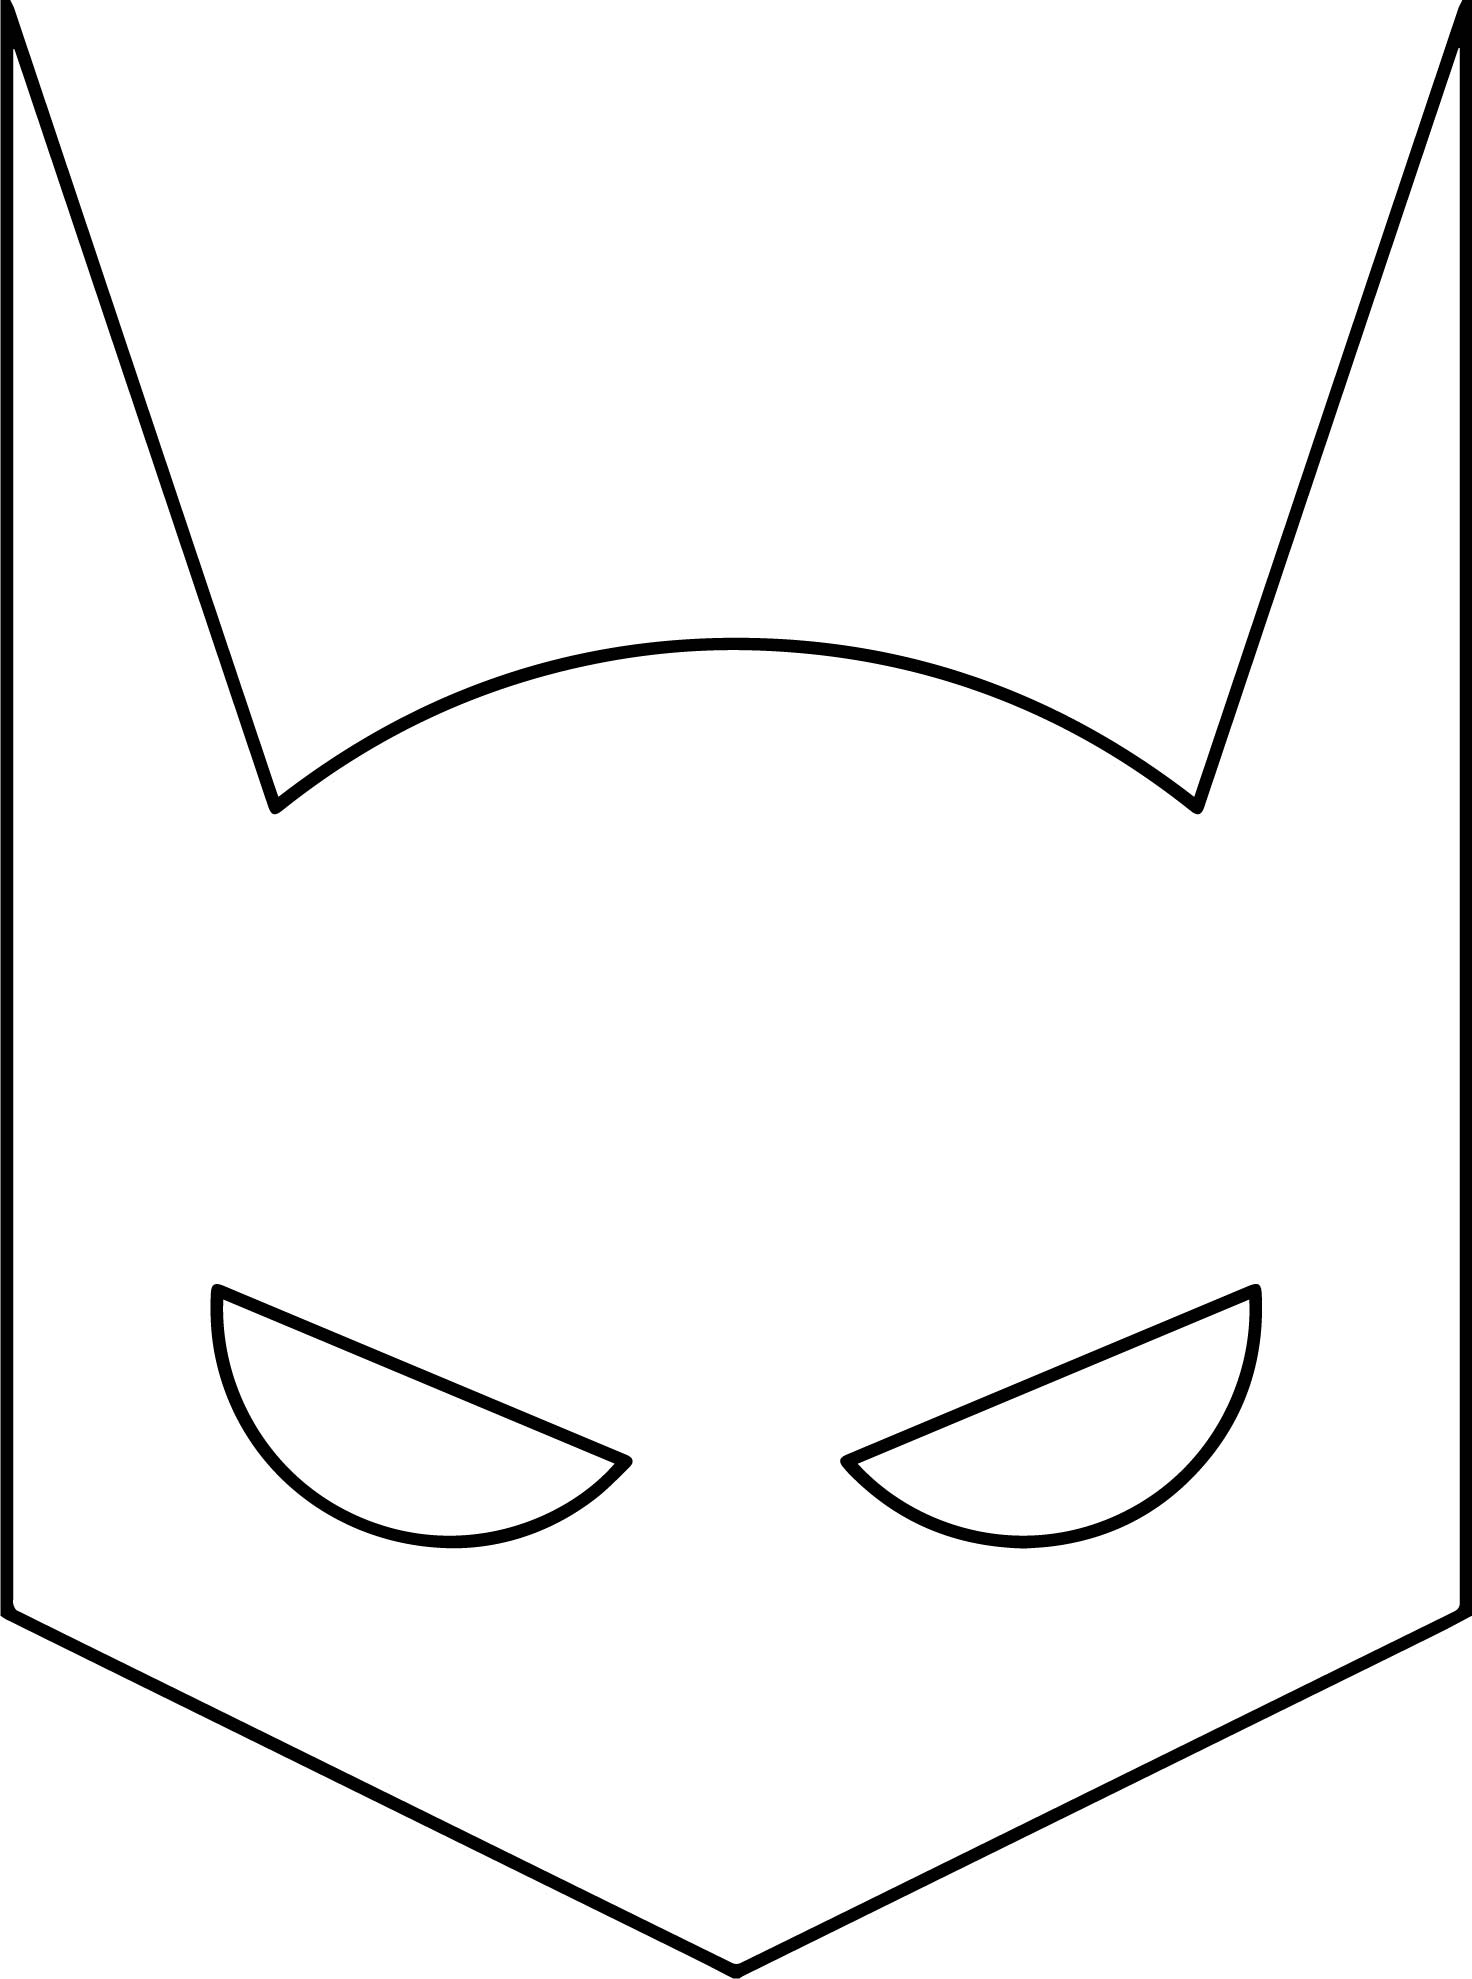 Superheroes Super Hero Batman Mask Coloring Page